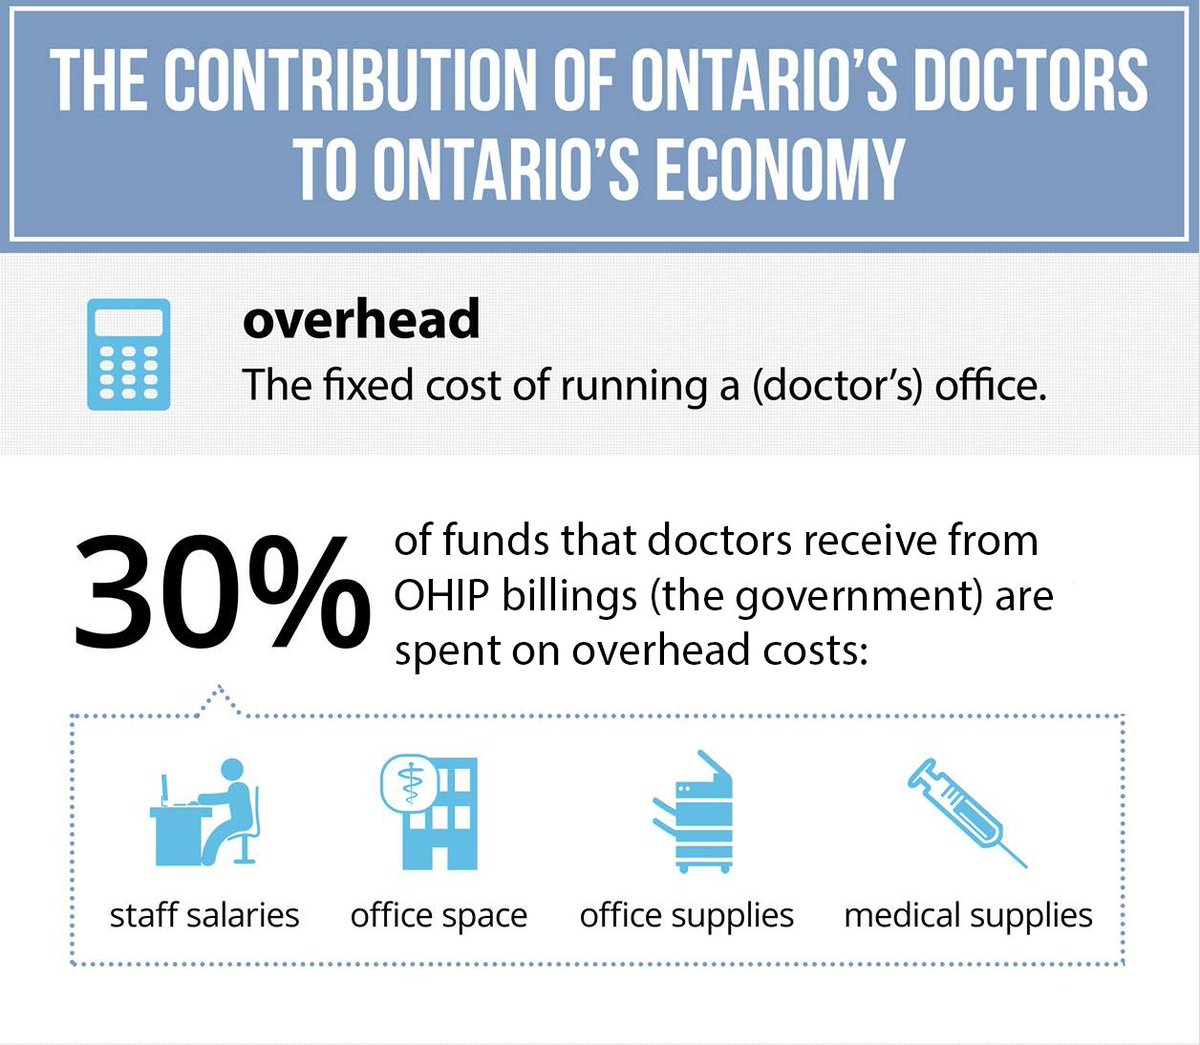 Did you know that on average, ONE Ontario doctor creates FOUR full-time jobs in their community? #ONhealth